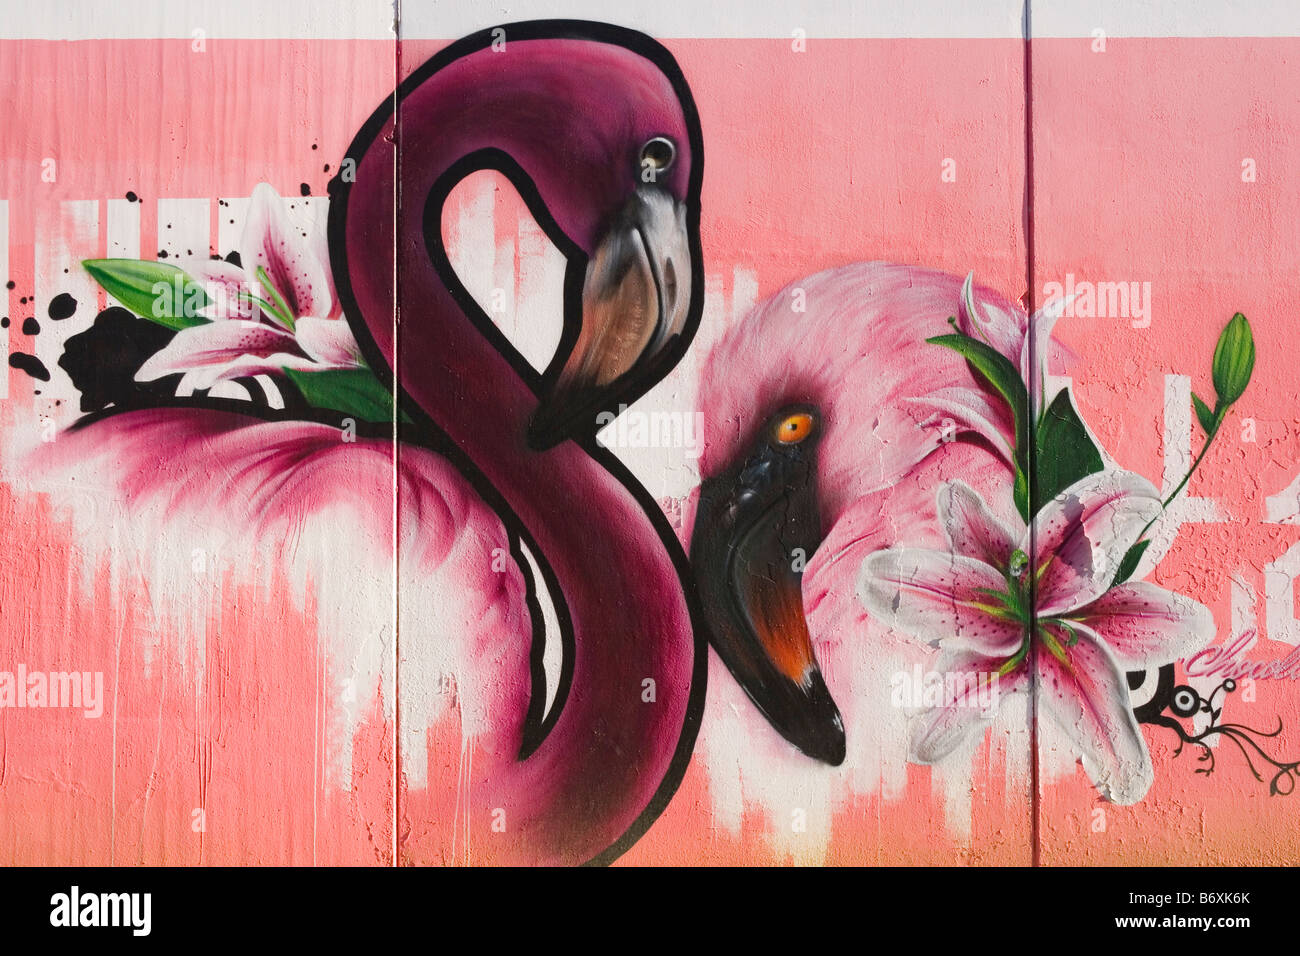 Graffiti on wall of two pink flamingoes - Stock Image